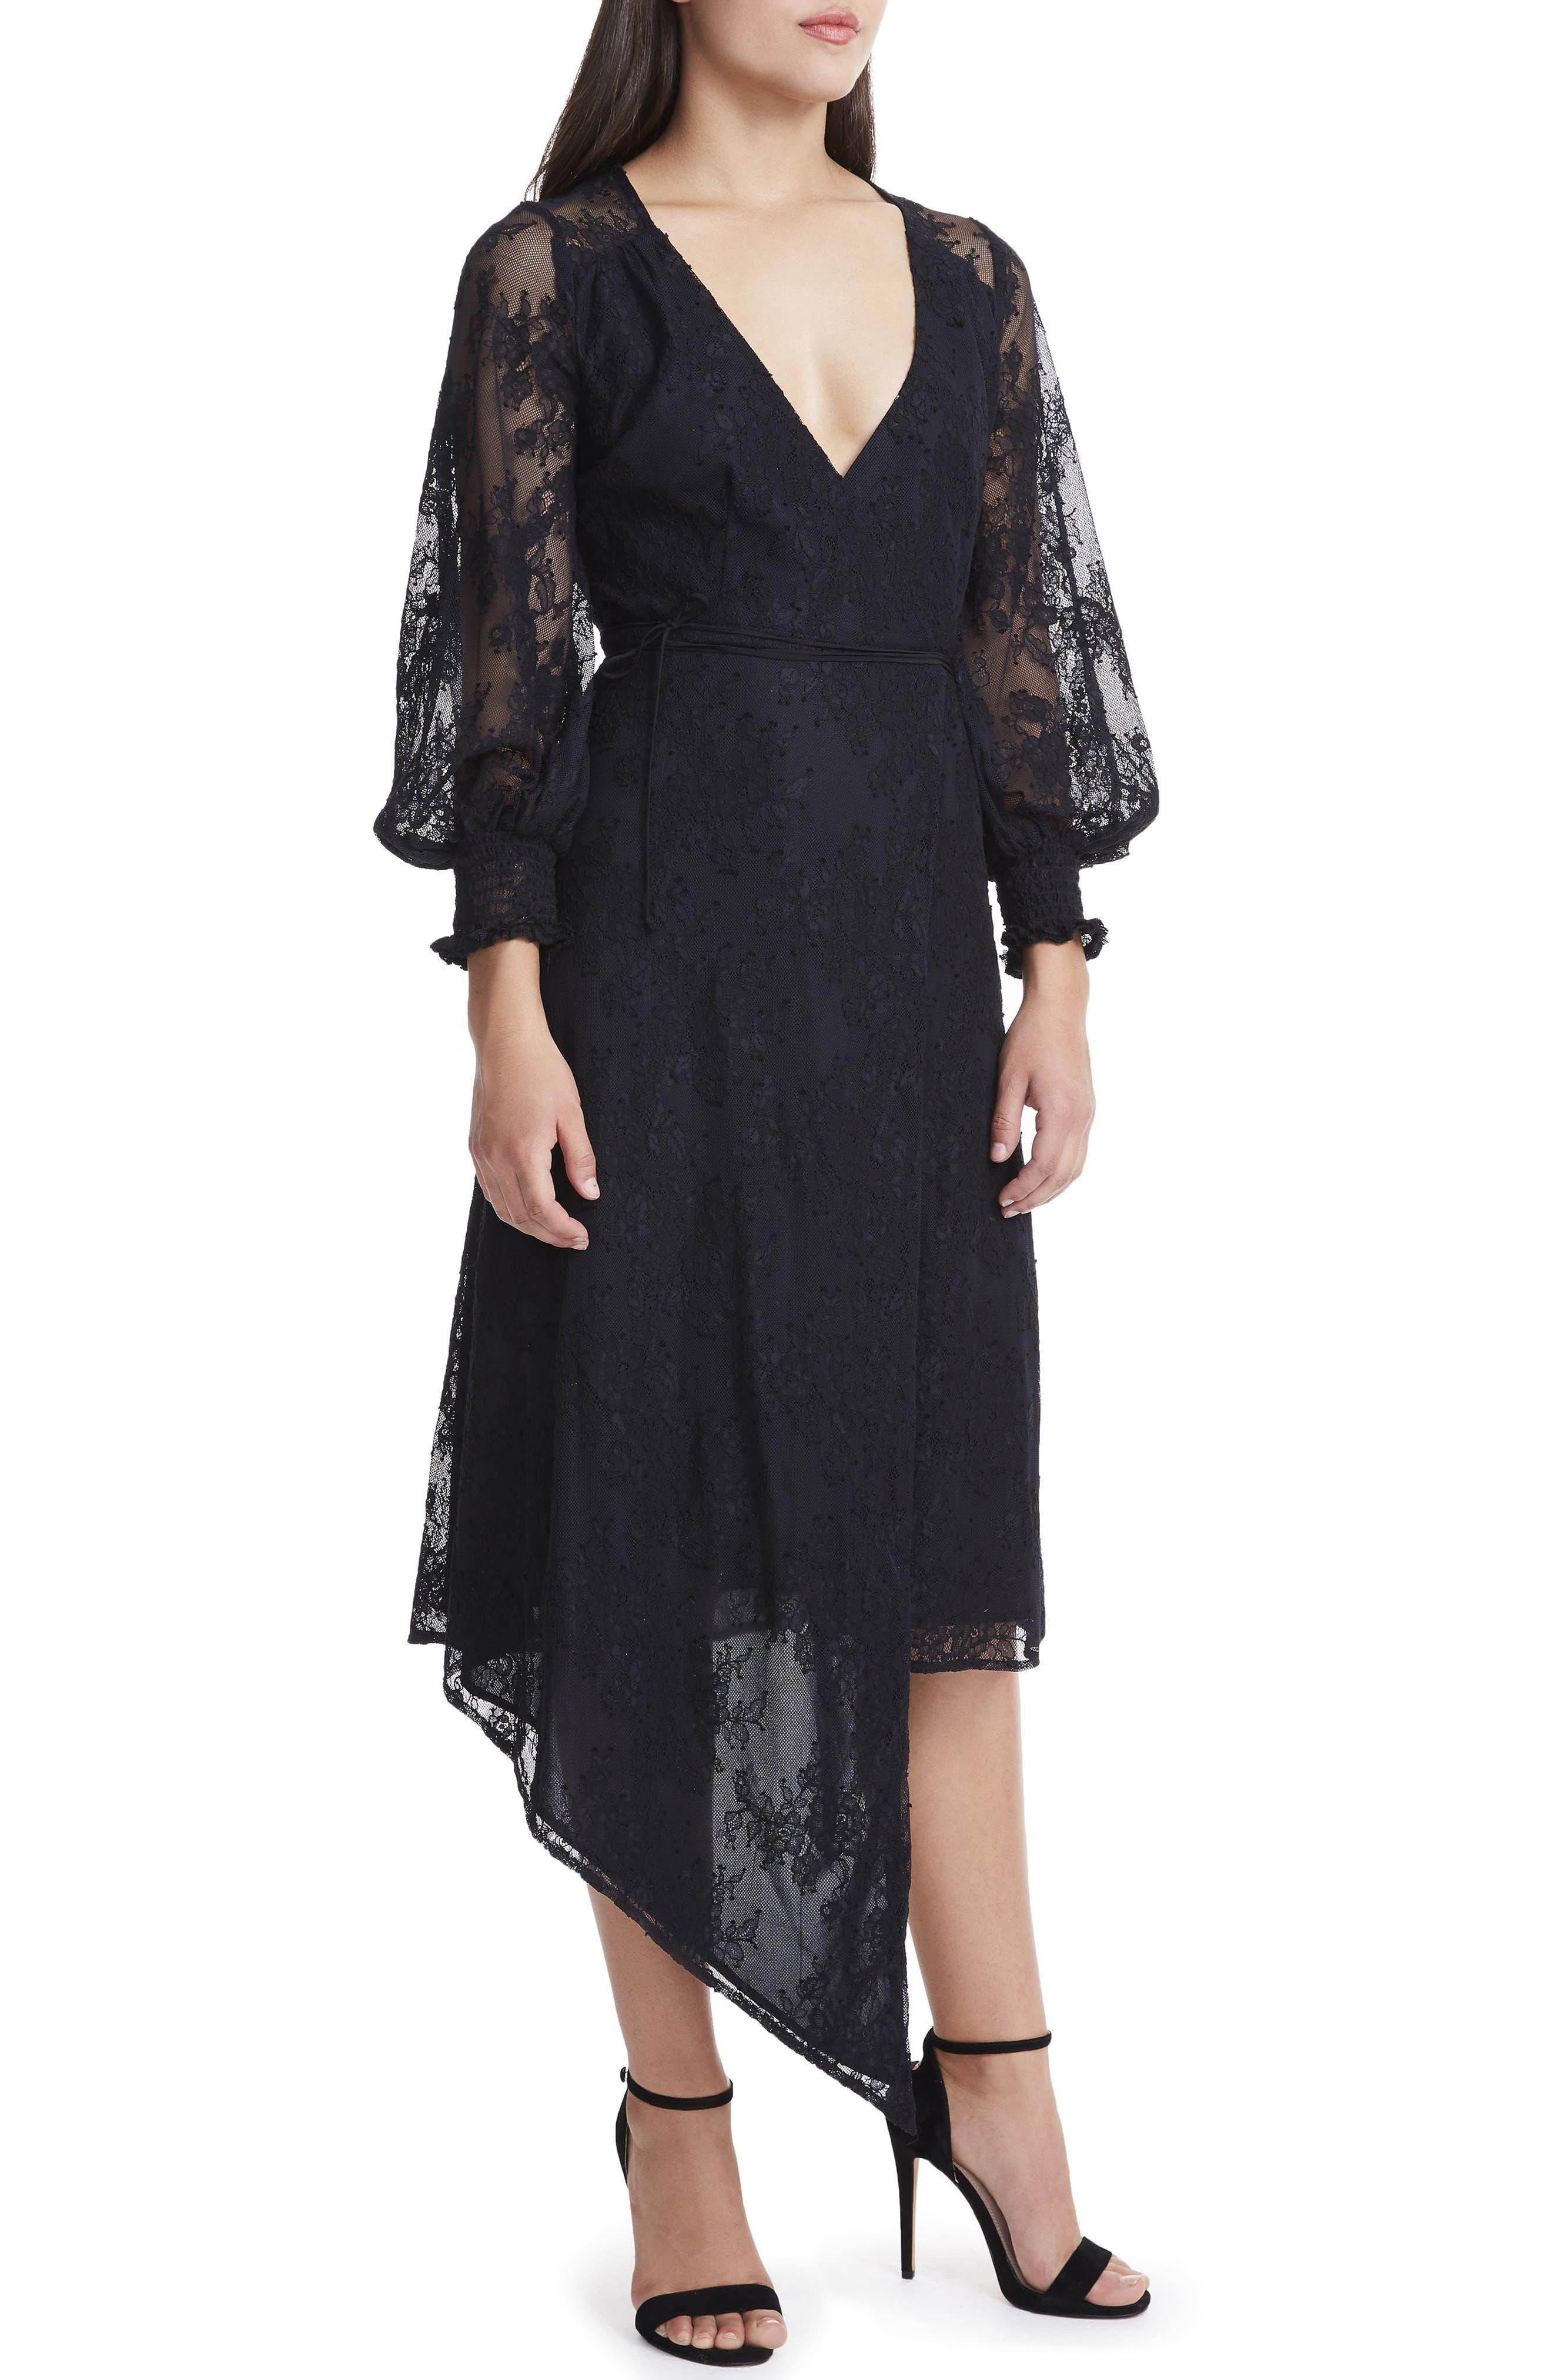 Amalfi Lantern Midi Wrap Dress,                             Alternate thumbnail 5, color,                             001